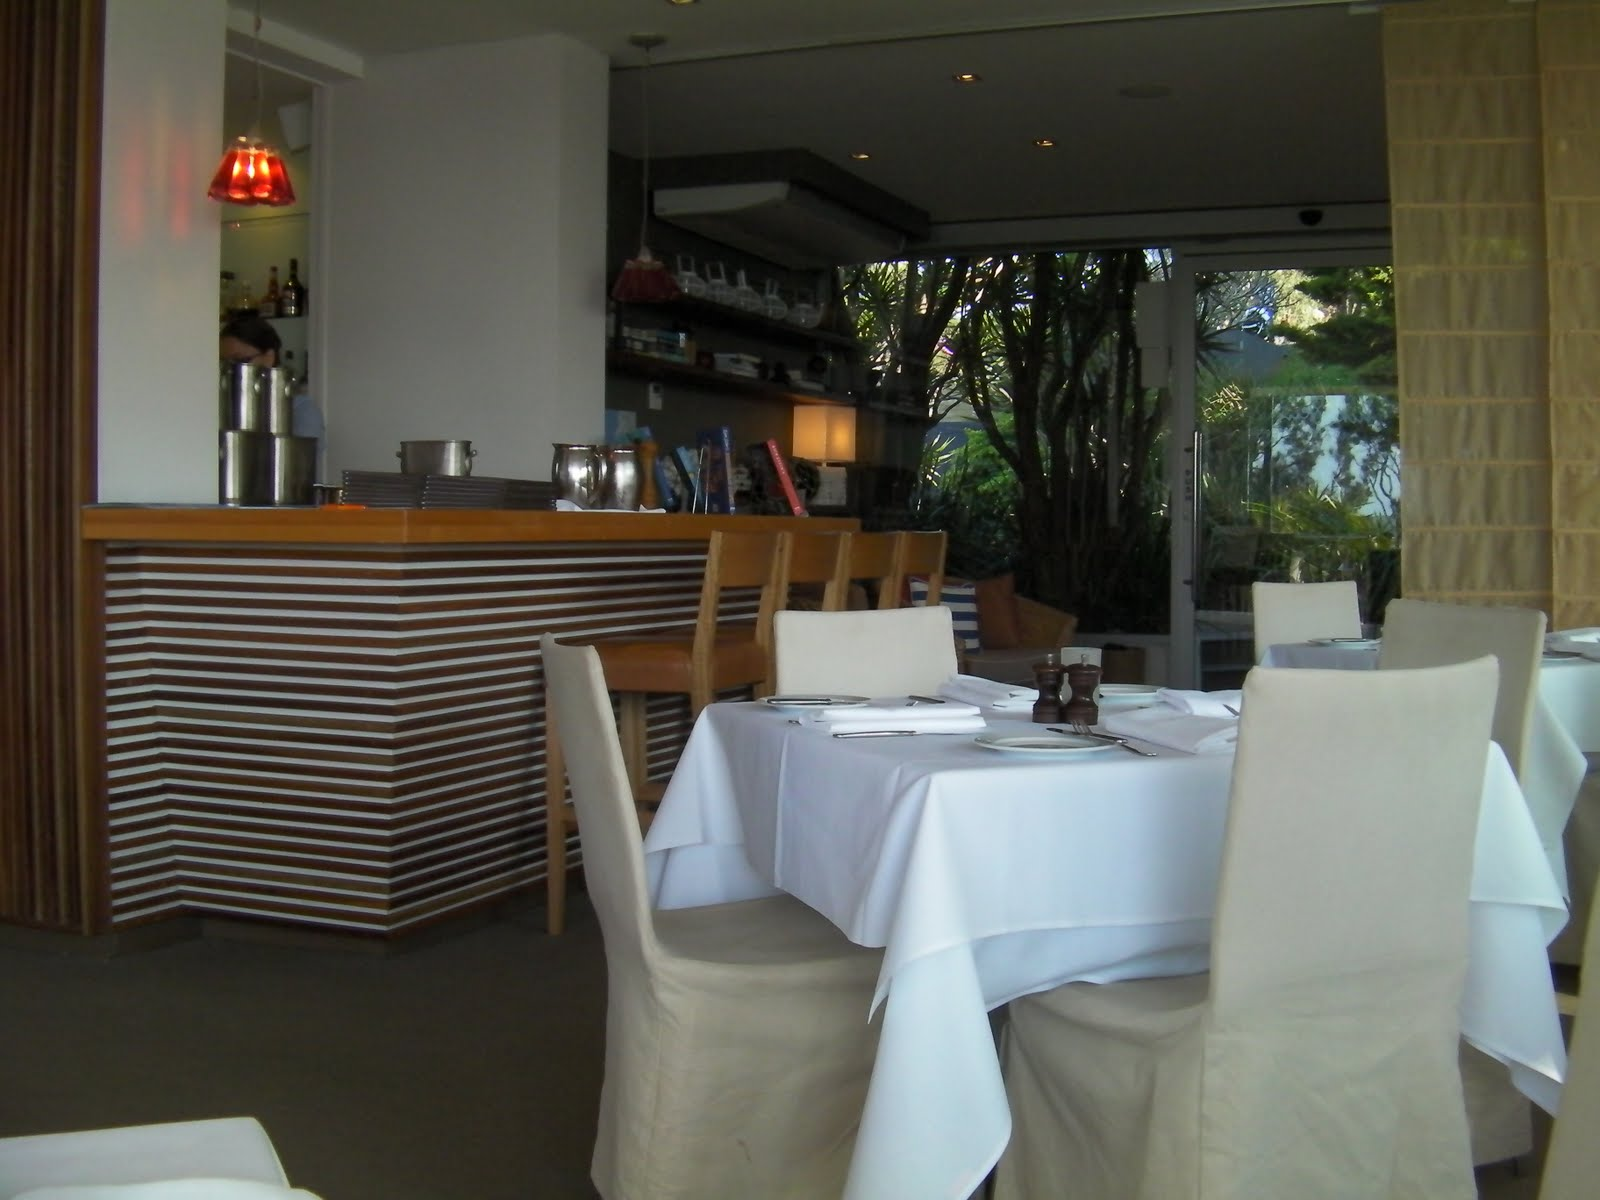 rick stein at bannisters mollymook restaurant, mollymook - reviews